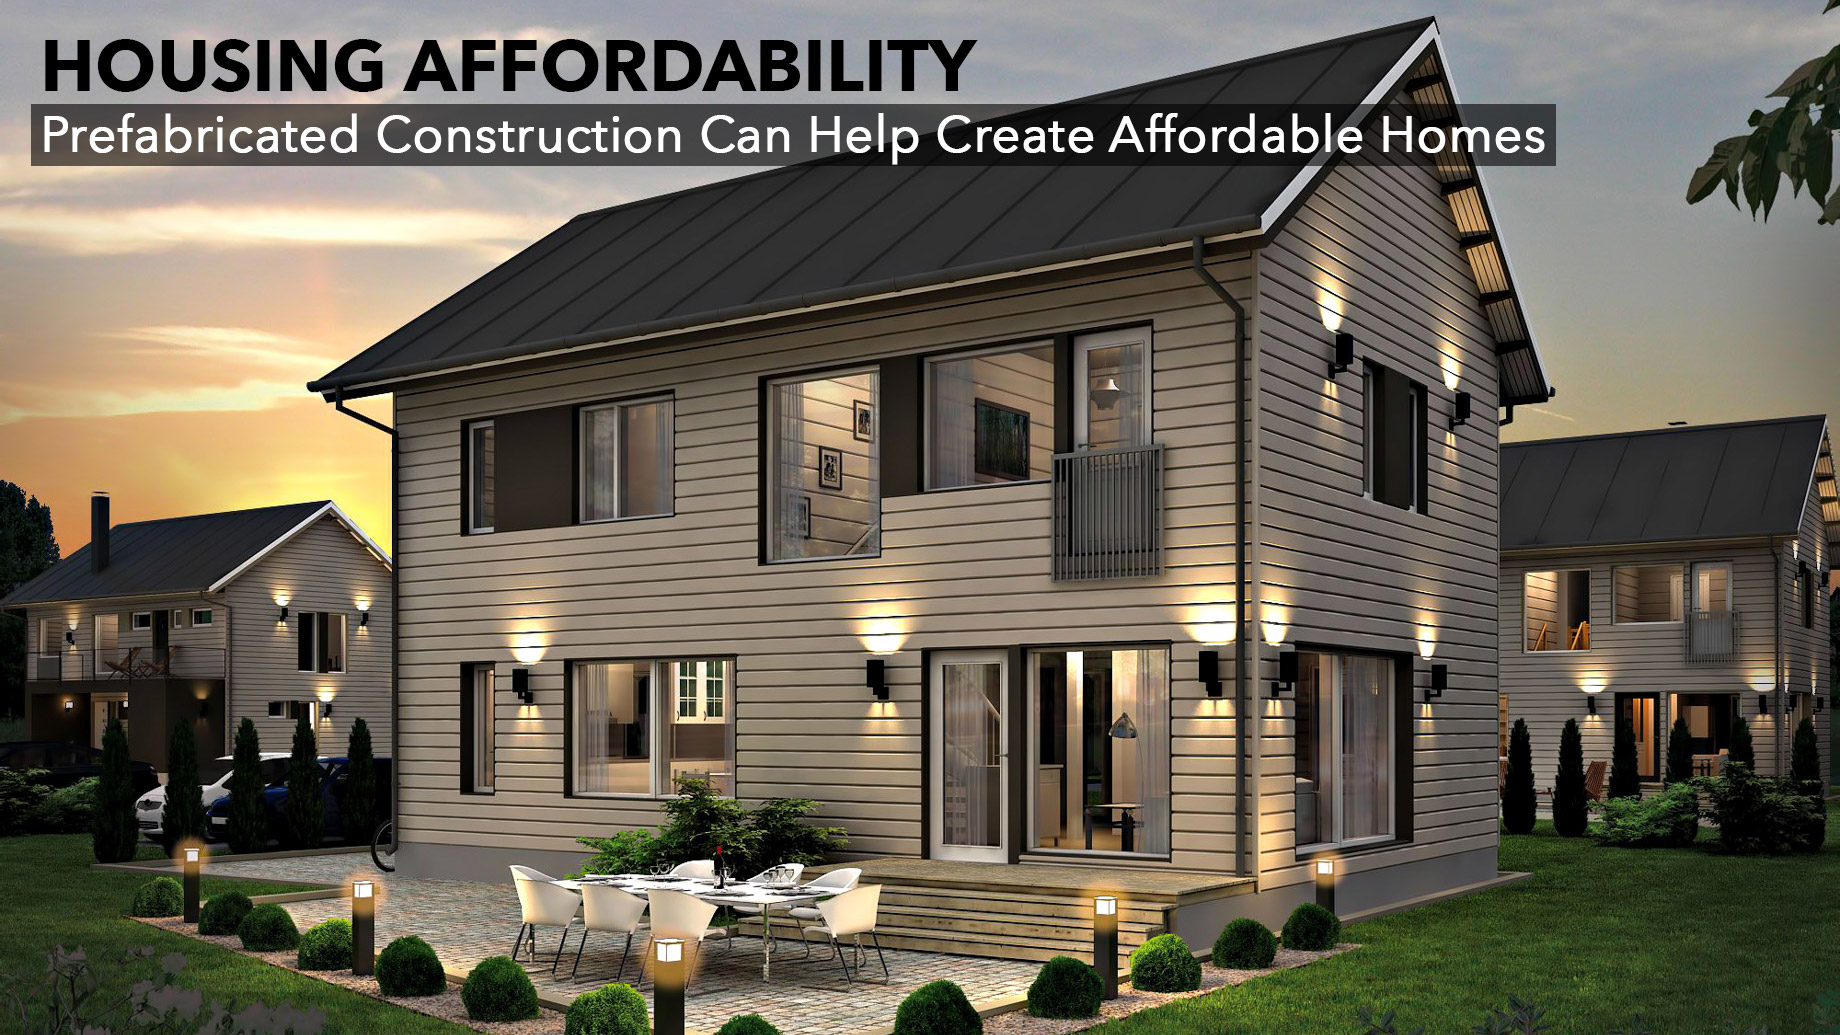 Housing Affordability - Prefabricated Construction Can Help Create Affordable Homes